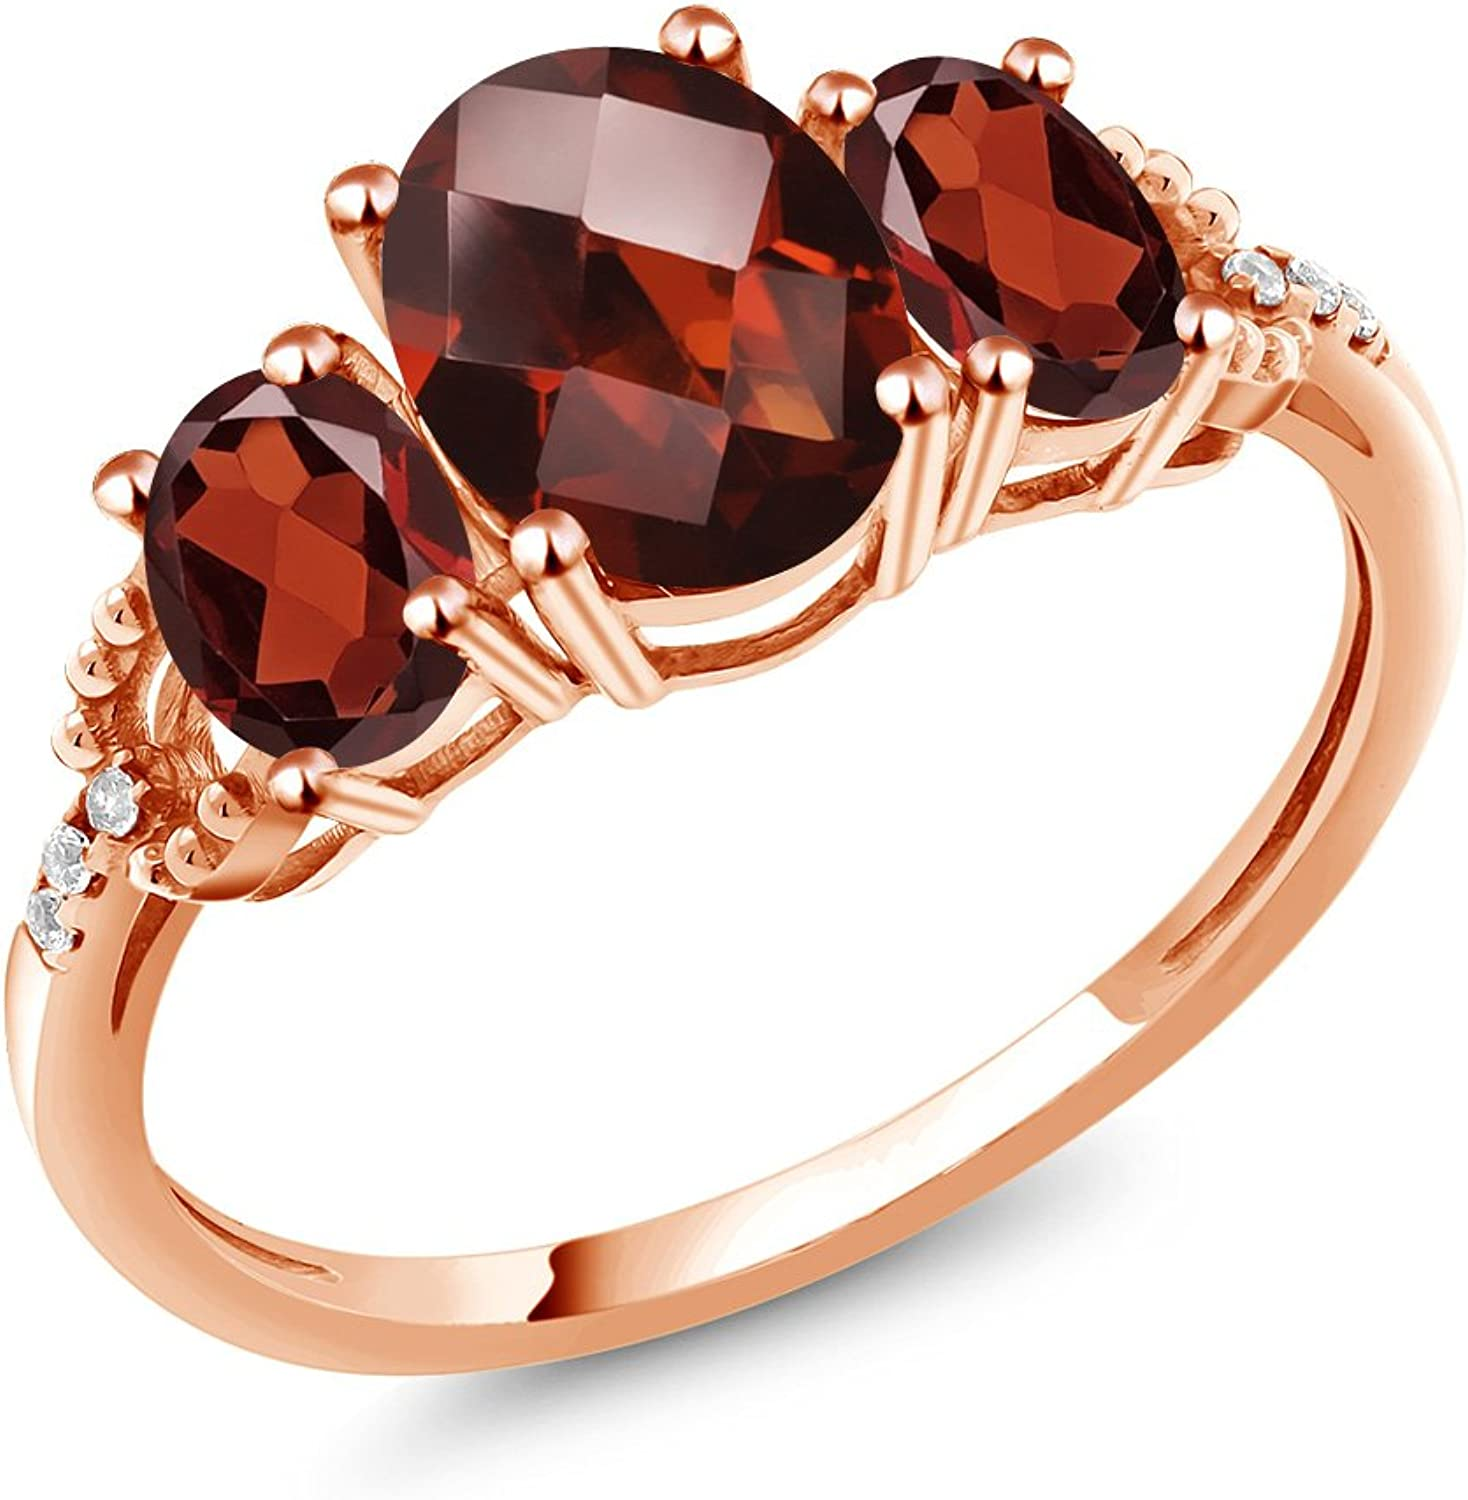 2.44 Ct Oval Checkerboard Red Garnet 10K pink gold Diamond Accent Ring